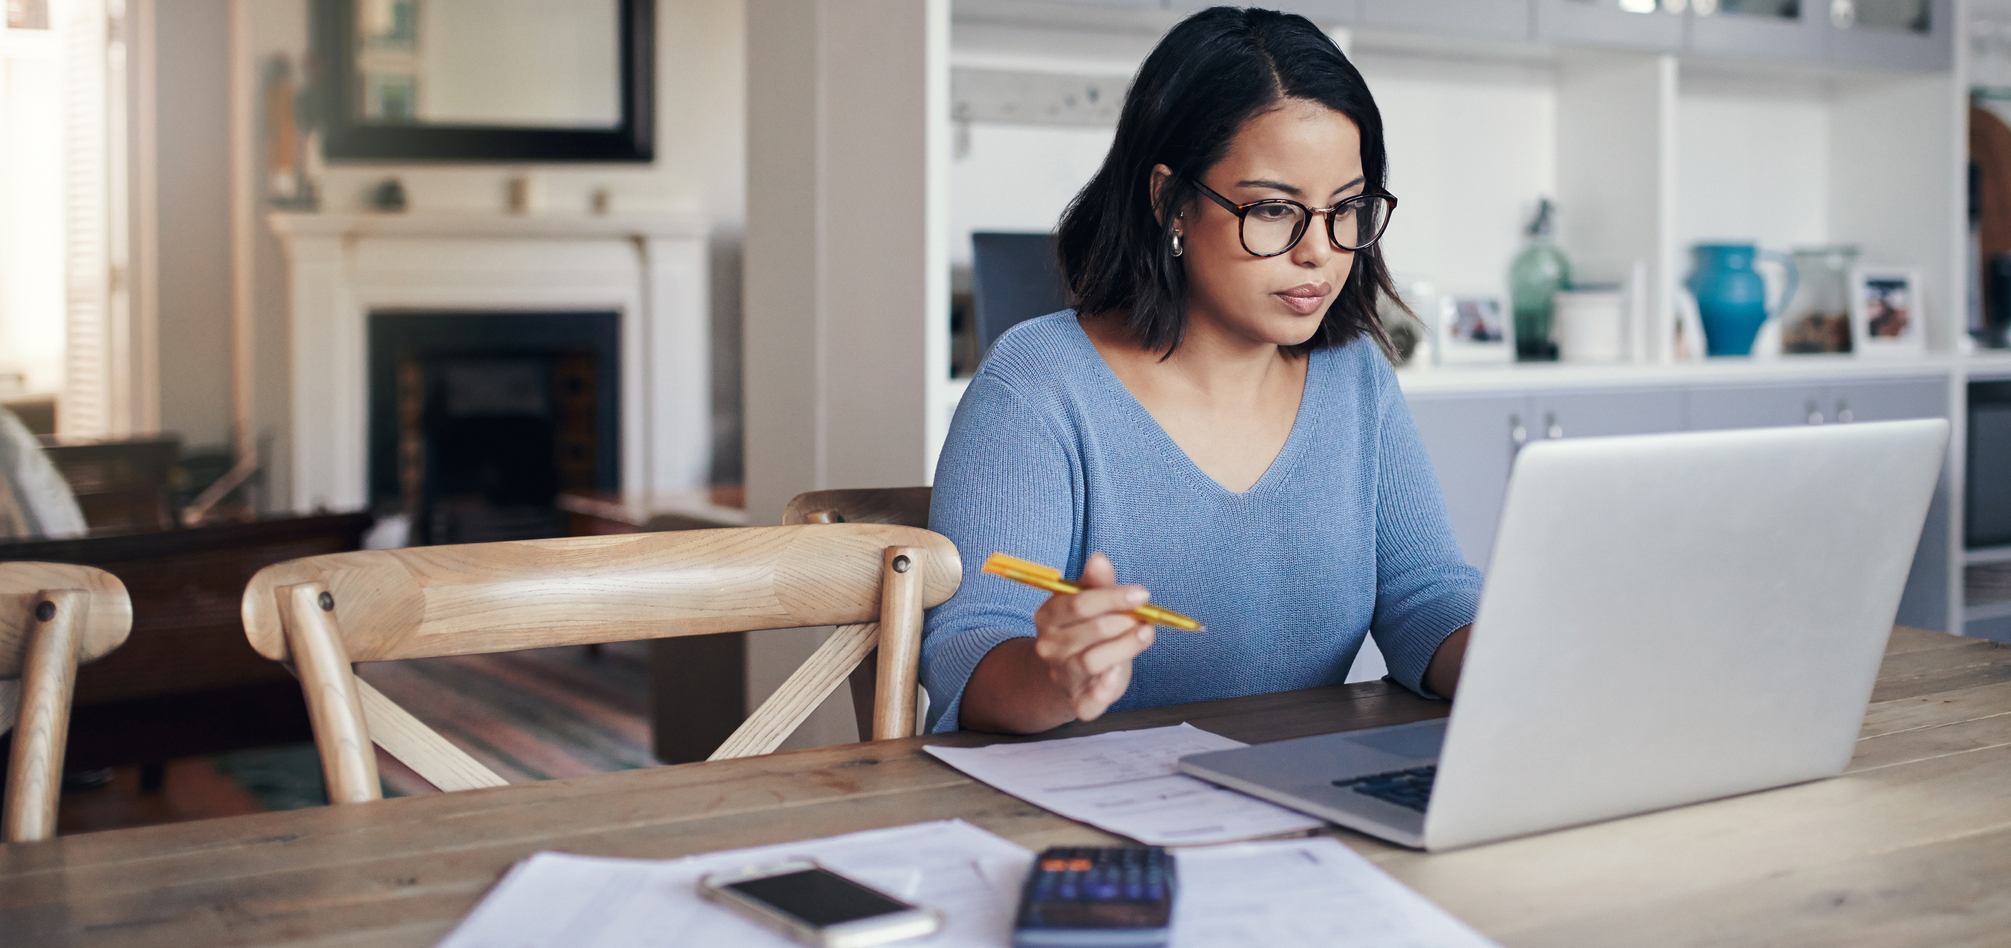 Woman studying on a laptop